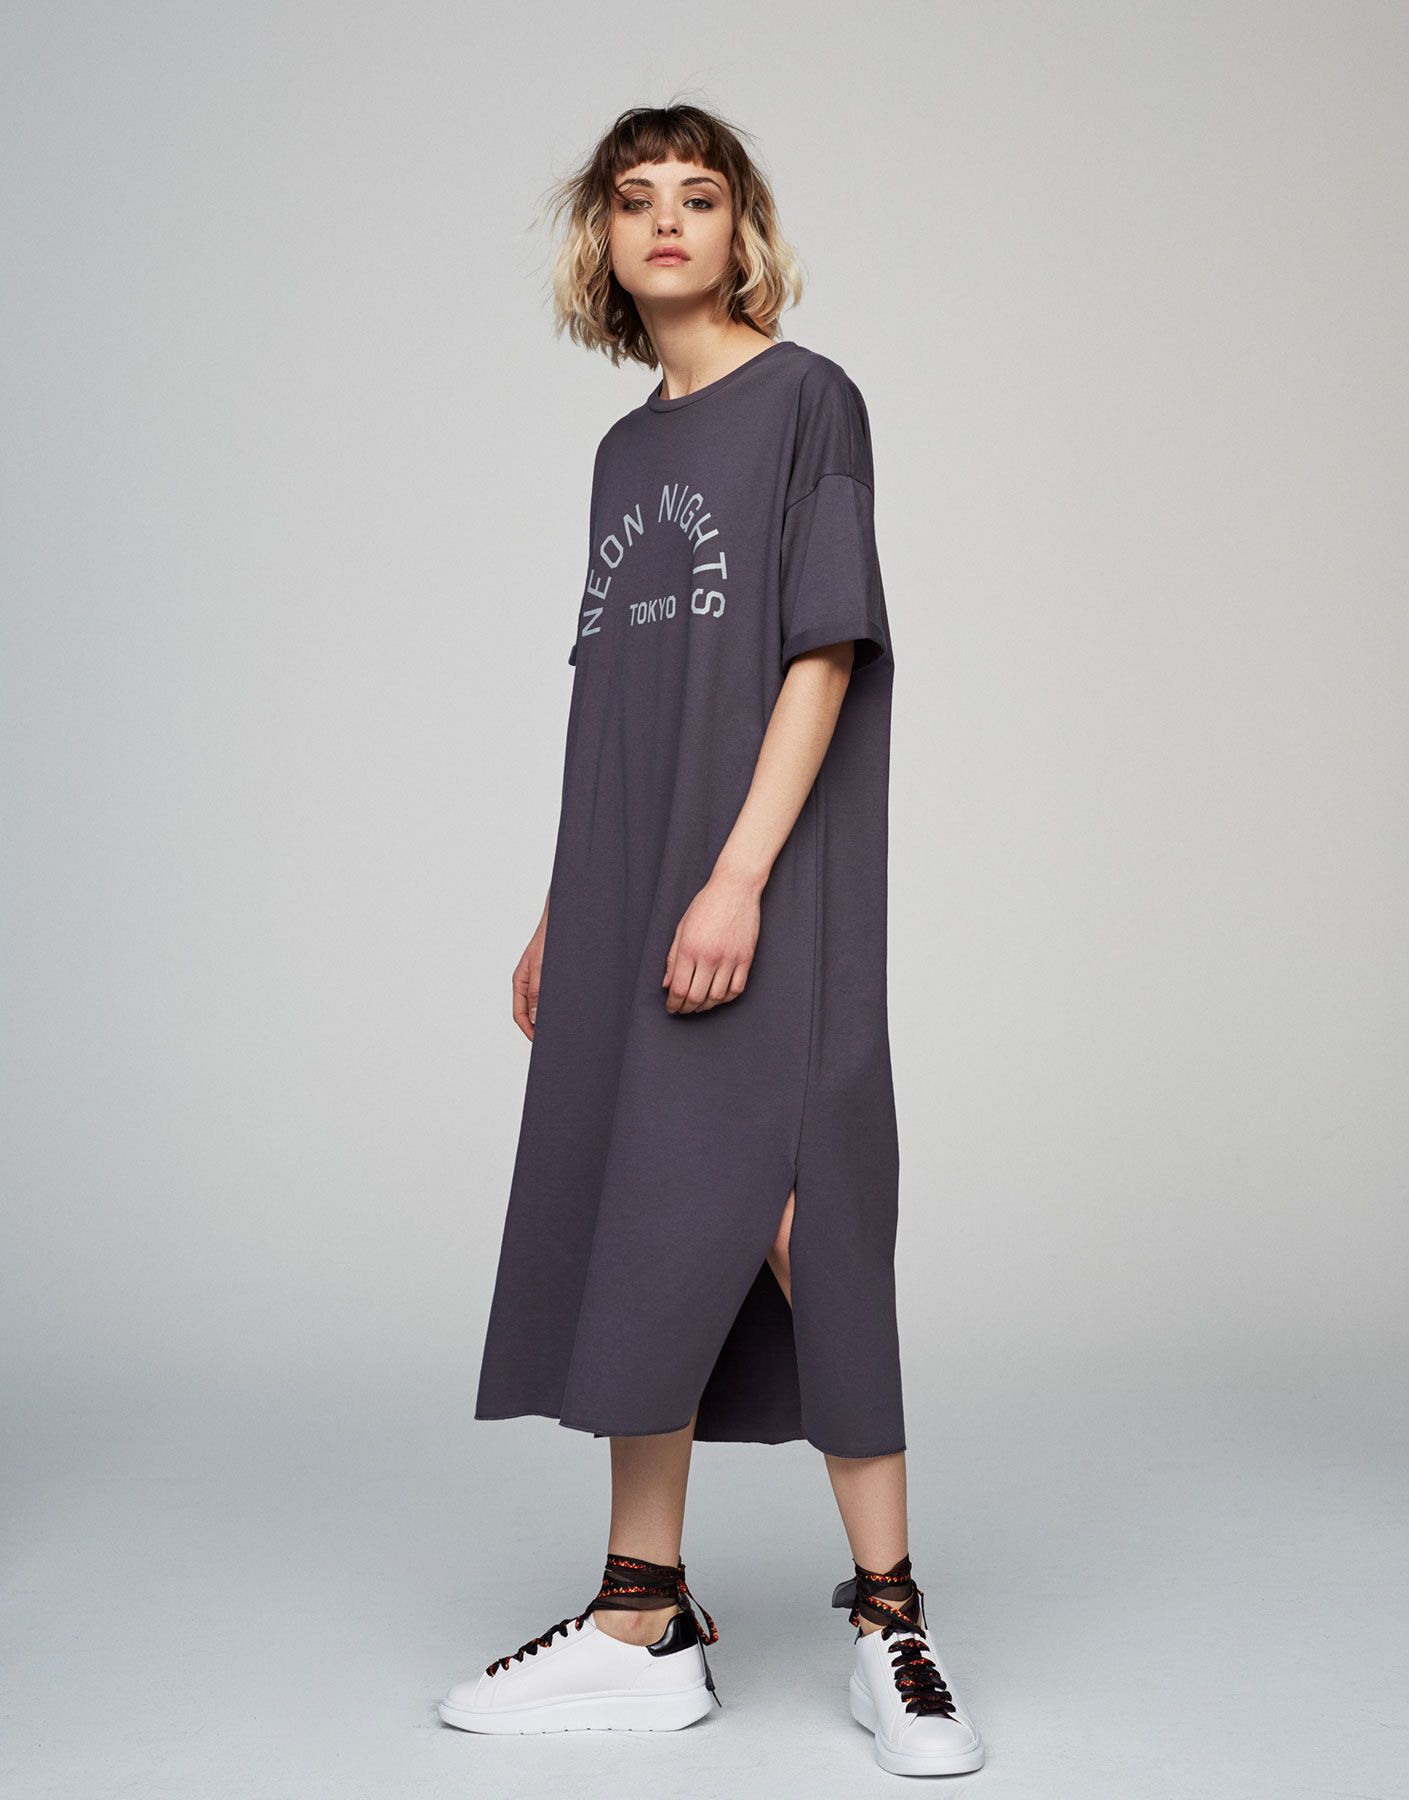 Oversized plush dress with slogan print